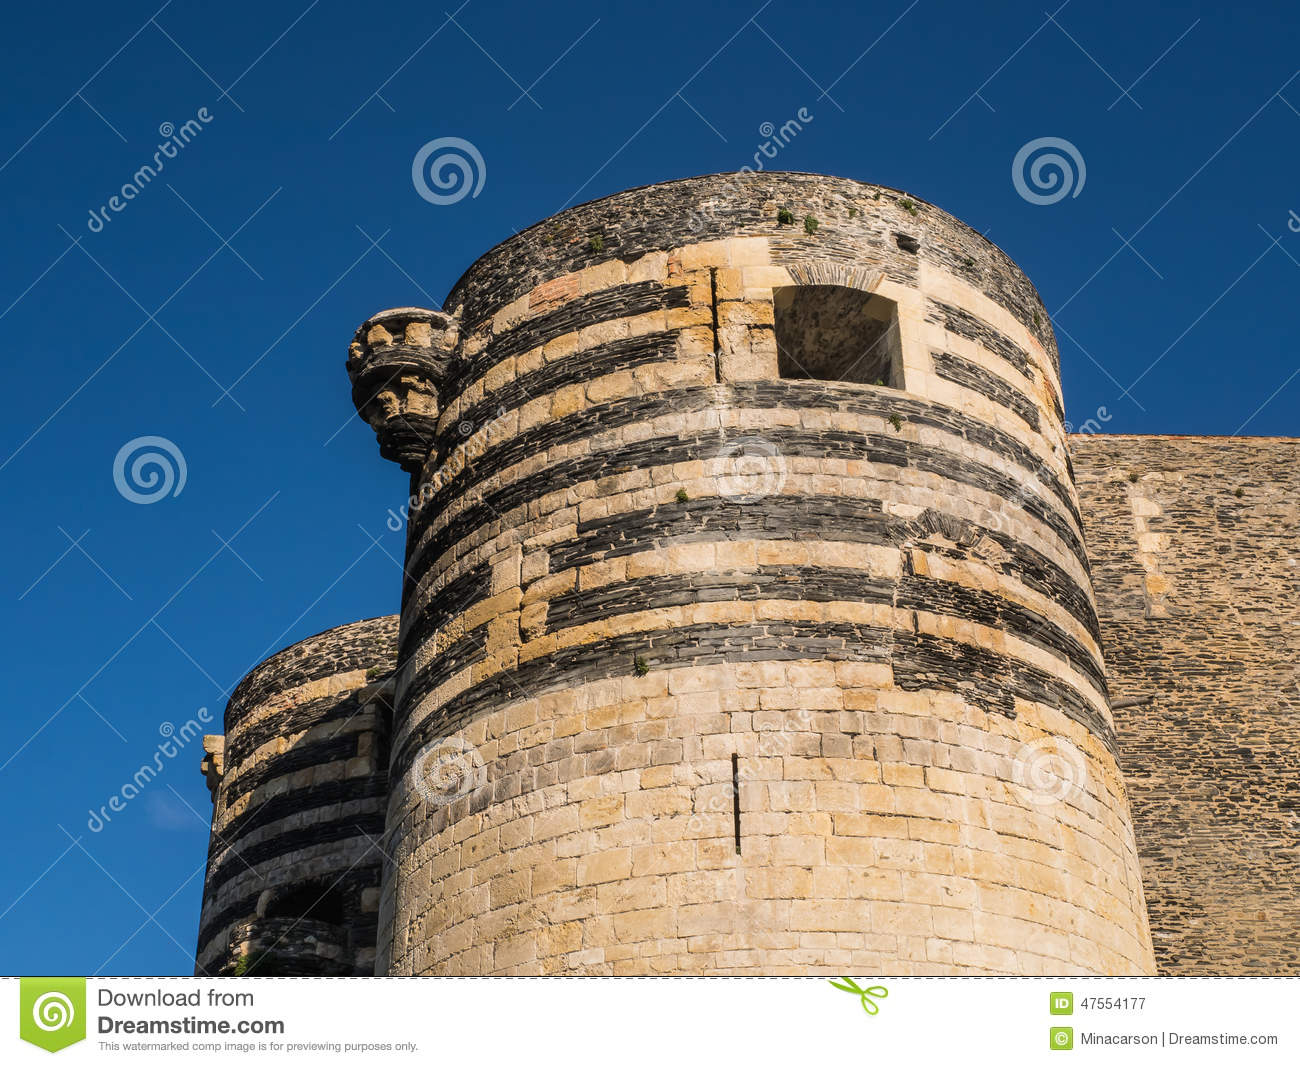 Detail of tower at Angers chateau, France, on a summer day